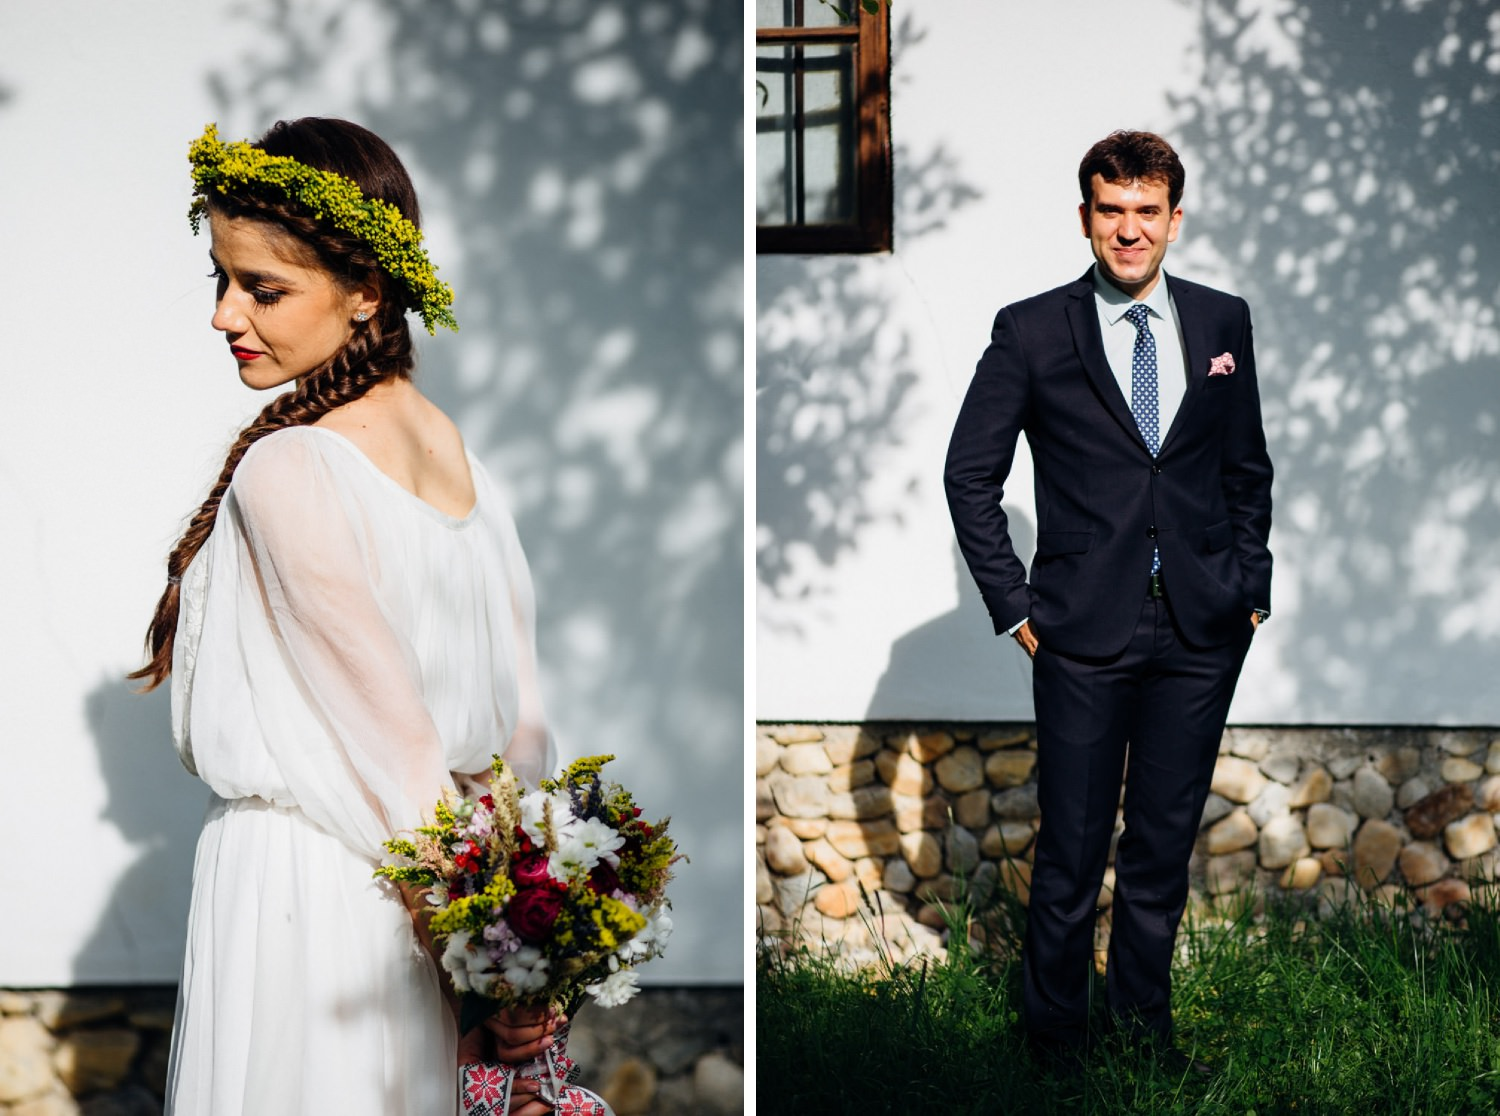 Bogdan & Luiza civil wedding Pitesti-1068